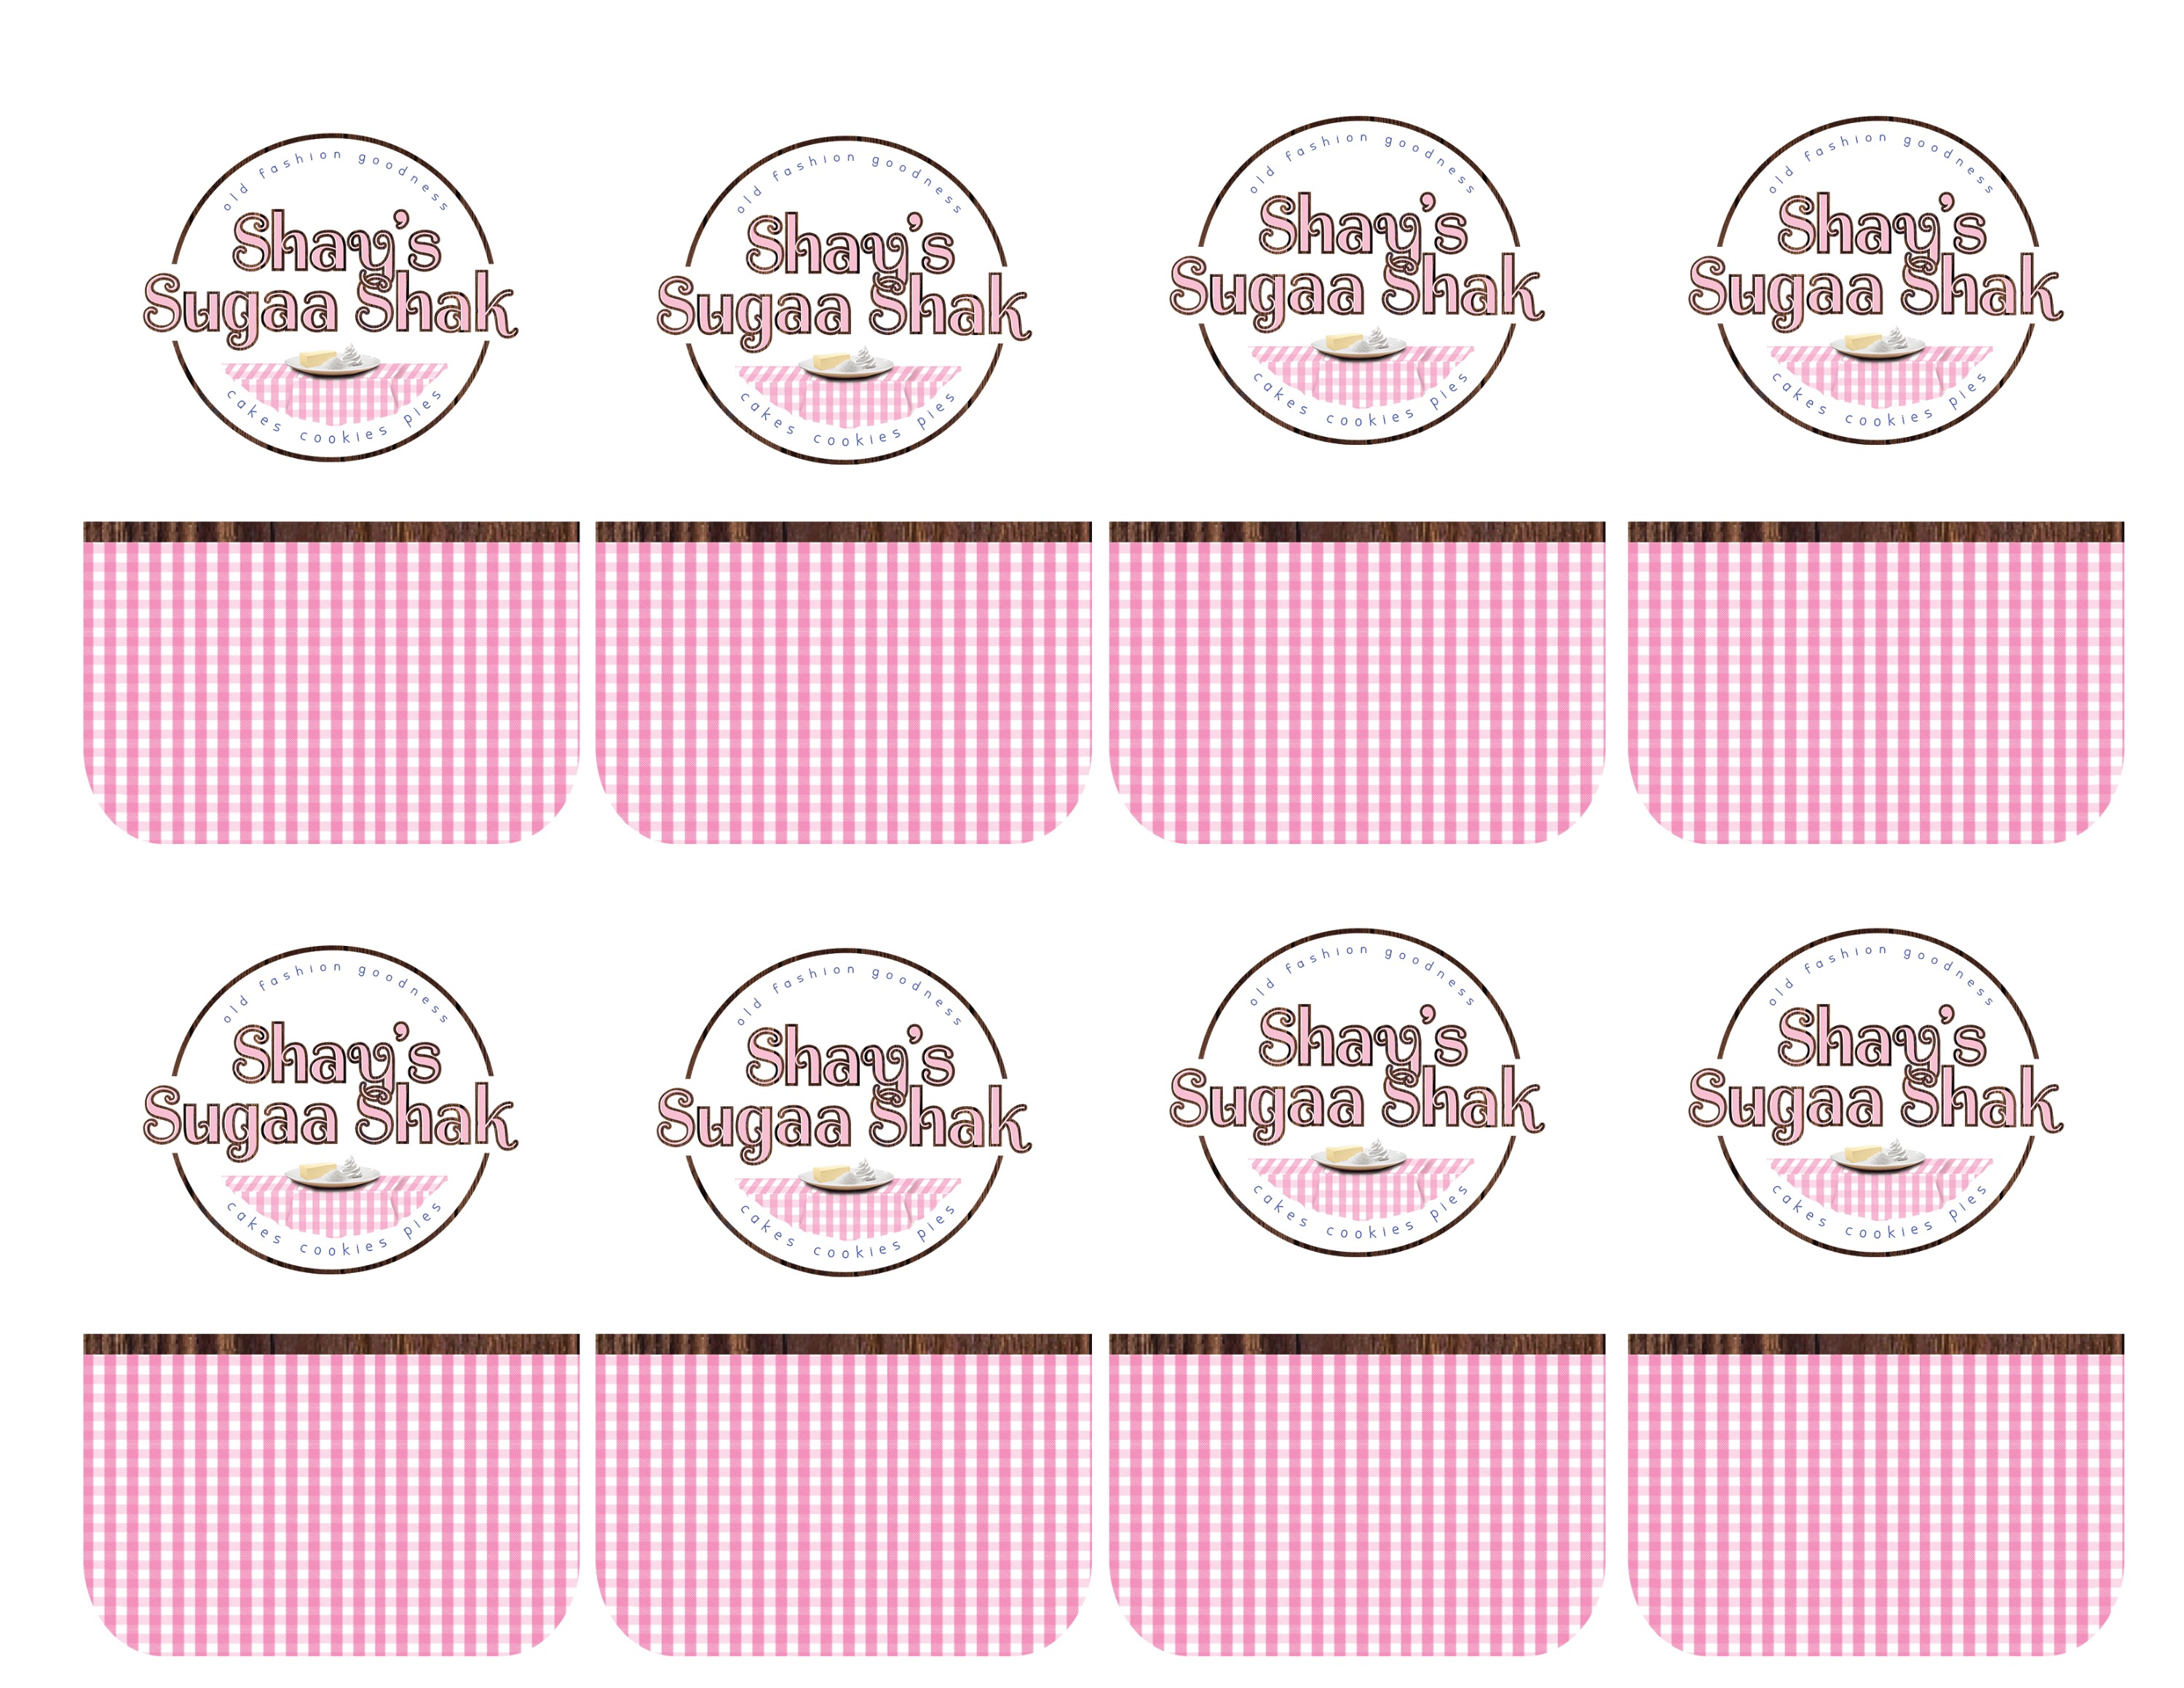 Shay's Sugaa Shak Rectangular Sticker Sheet